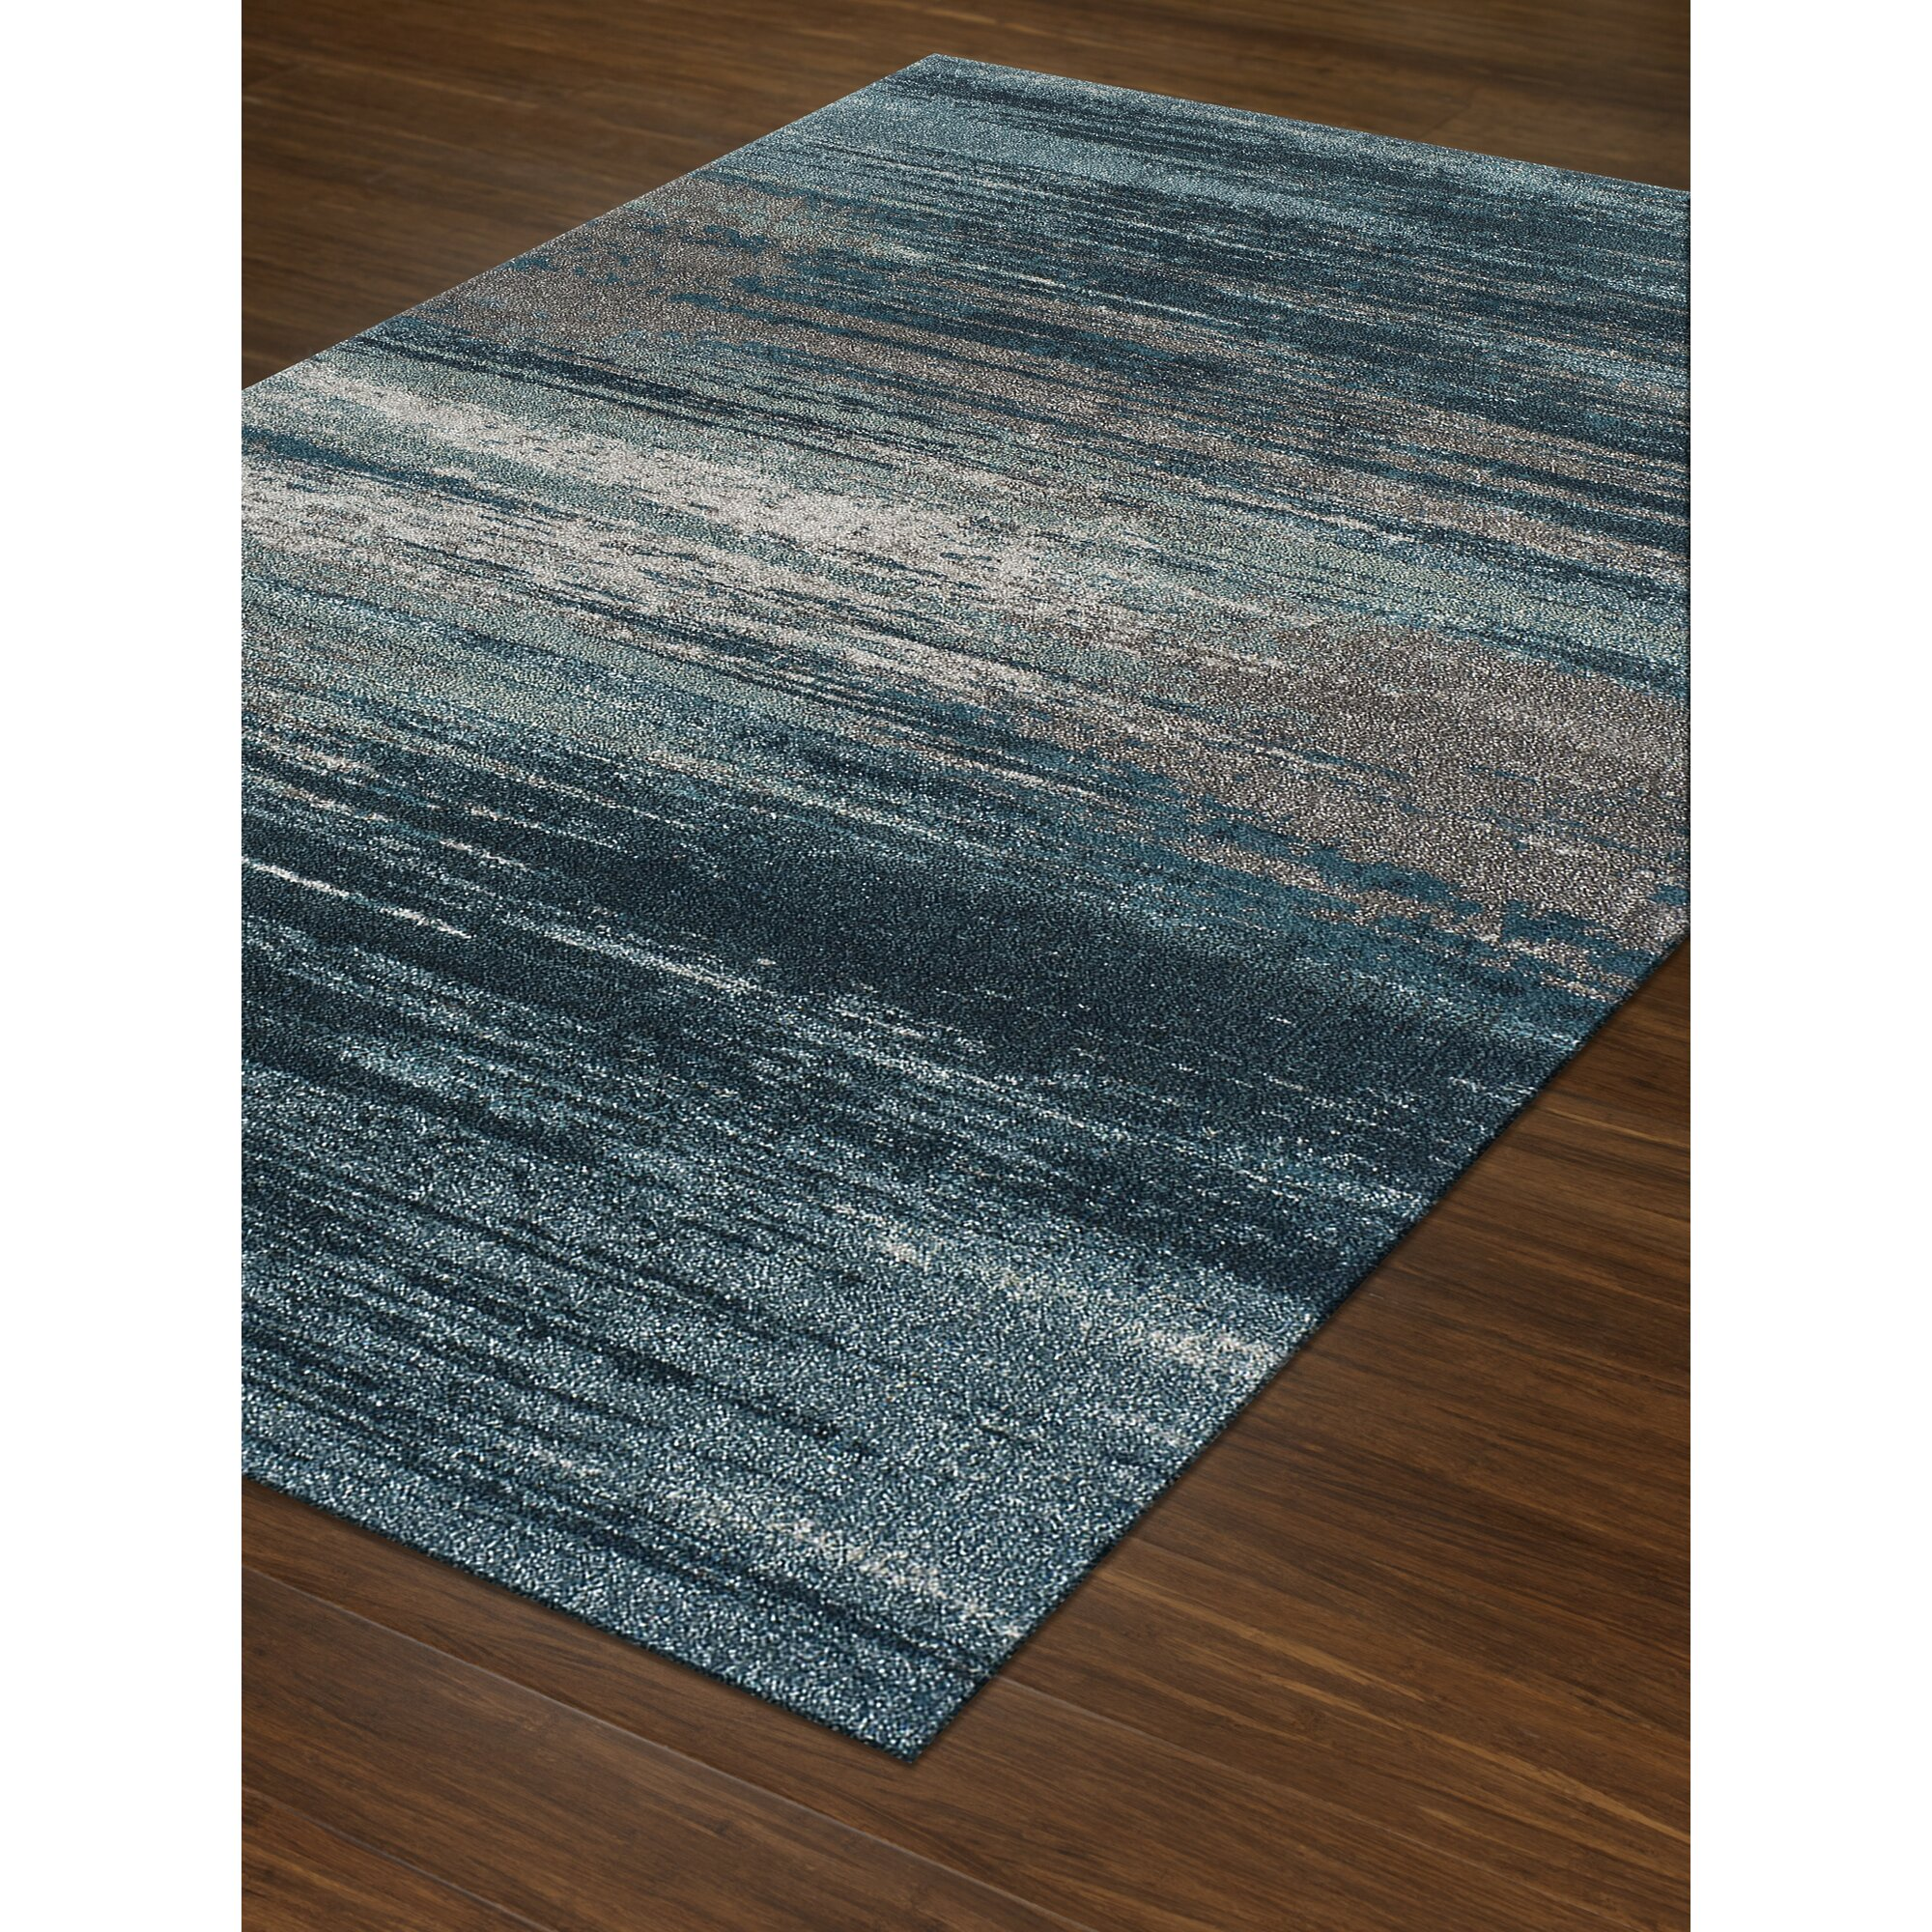 Turquoise And Gray Area Rugs Marvellous Design Blue 8x10